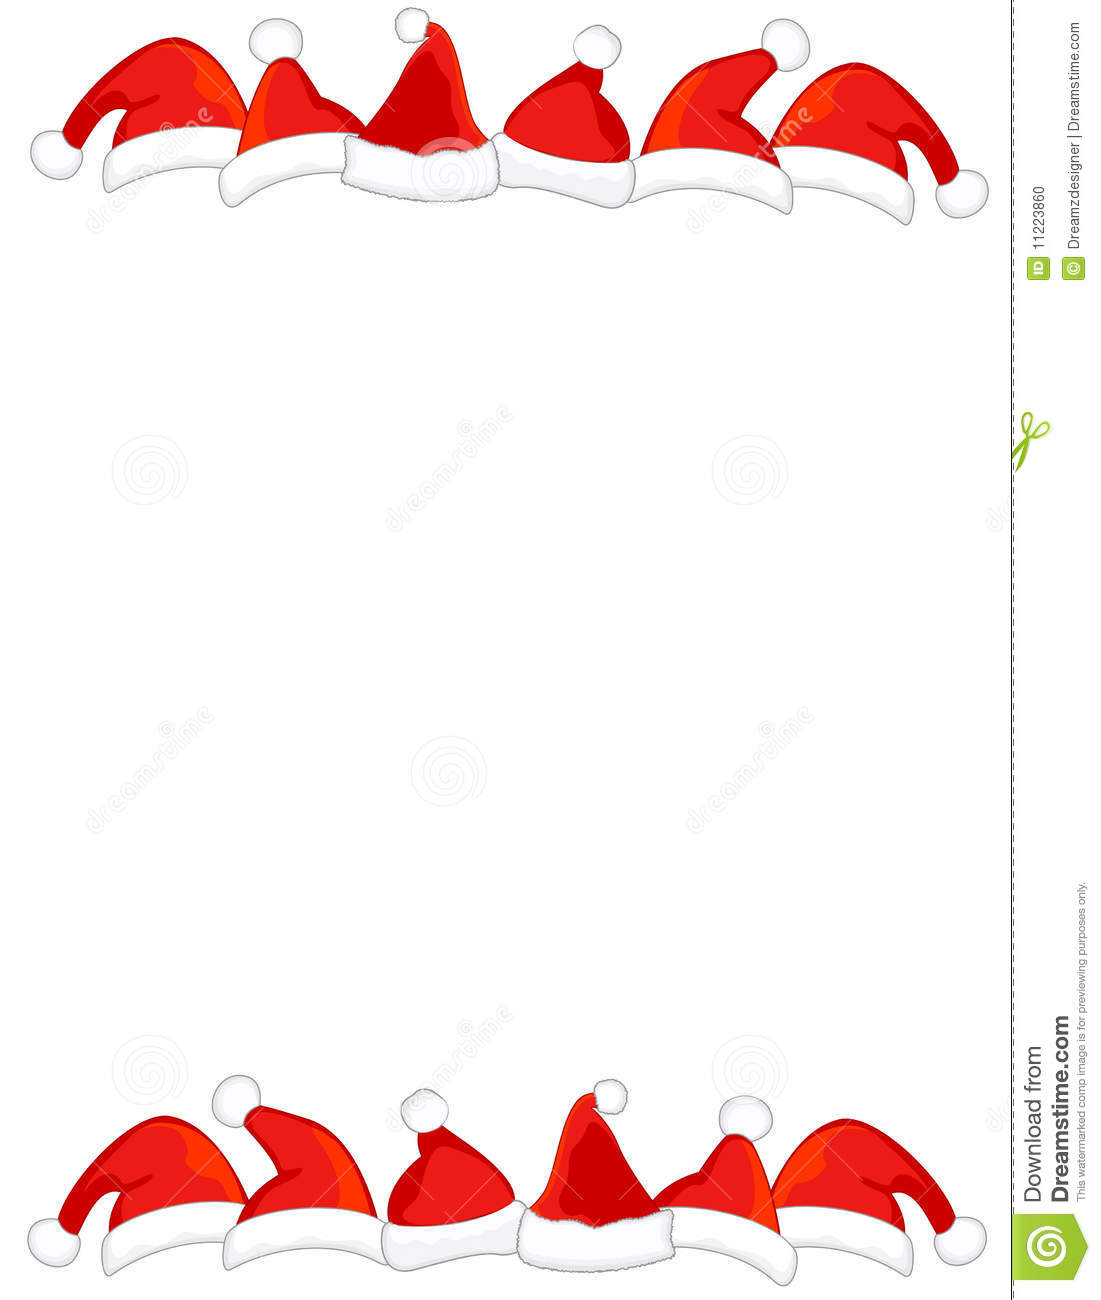 Santa Hat Border / Frame Stock Photo - Image: 11223860